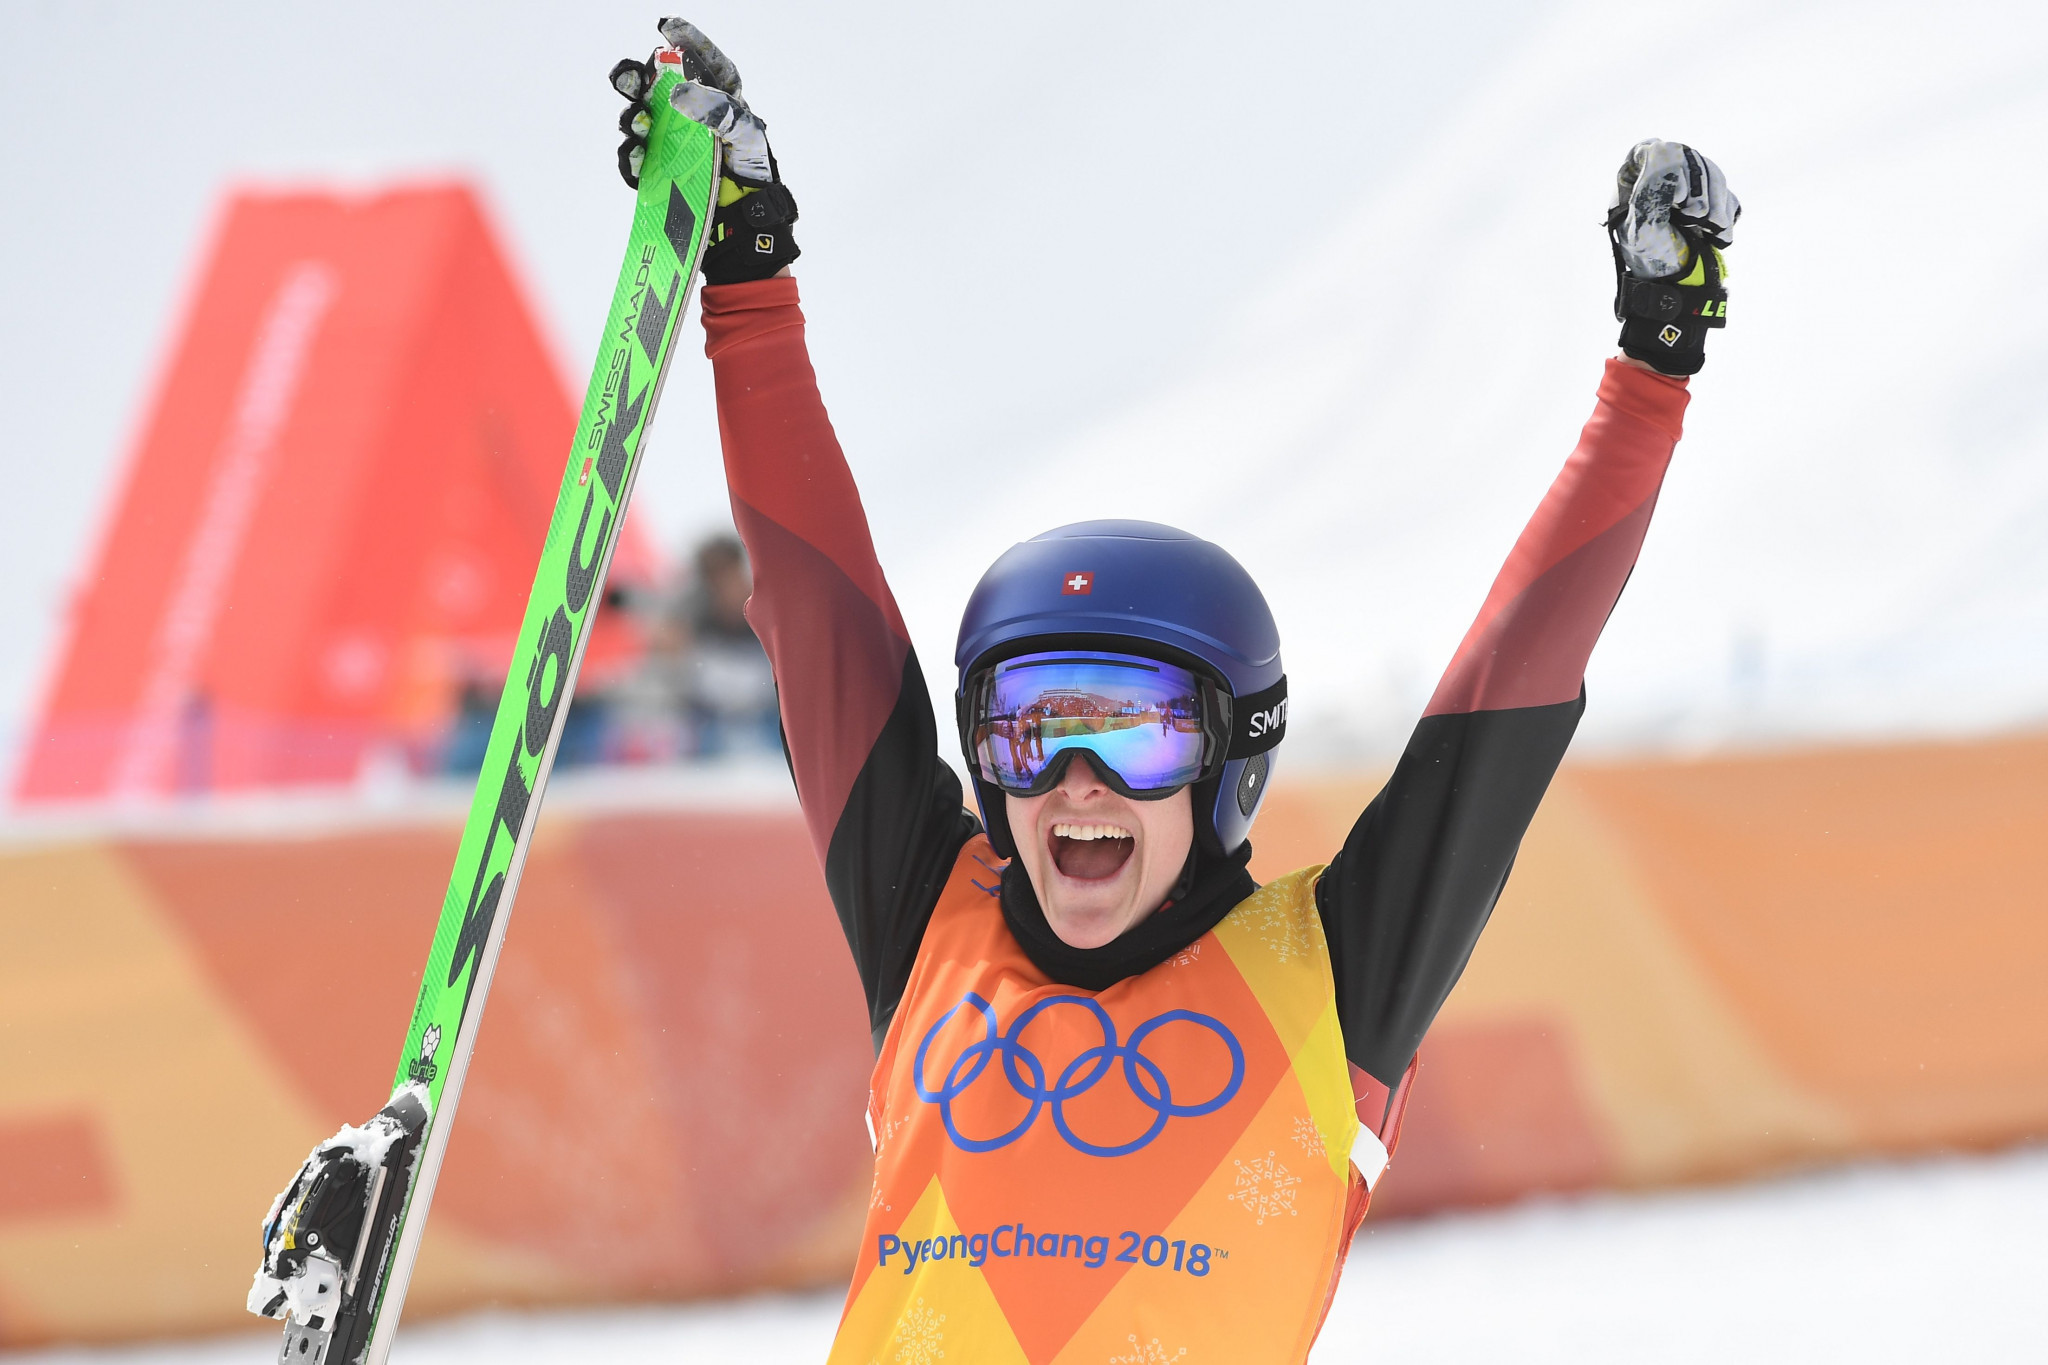 Smith leads women's qualifying as high winds force cancellation of second event at FIS Ski Cross World Cup